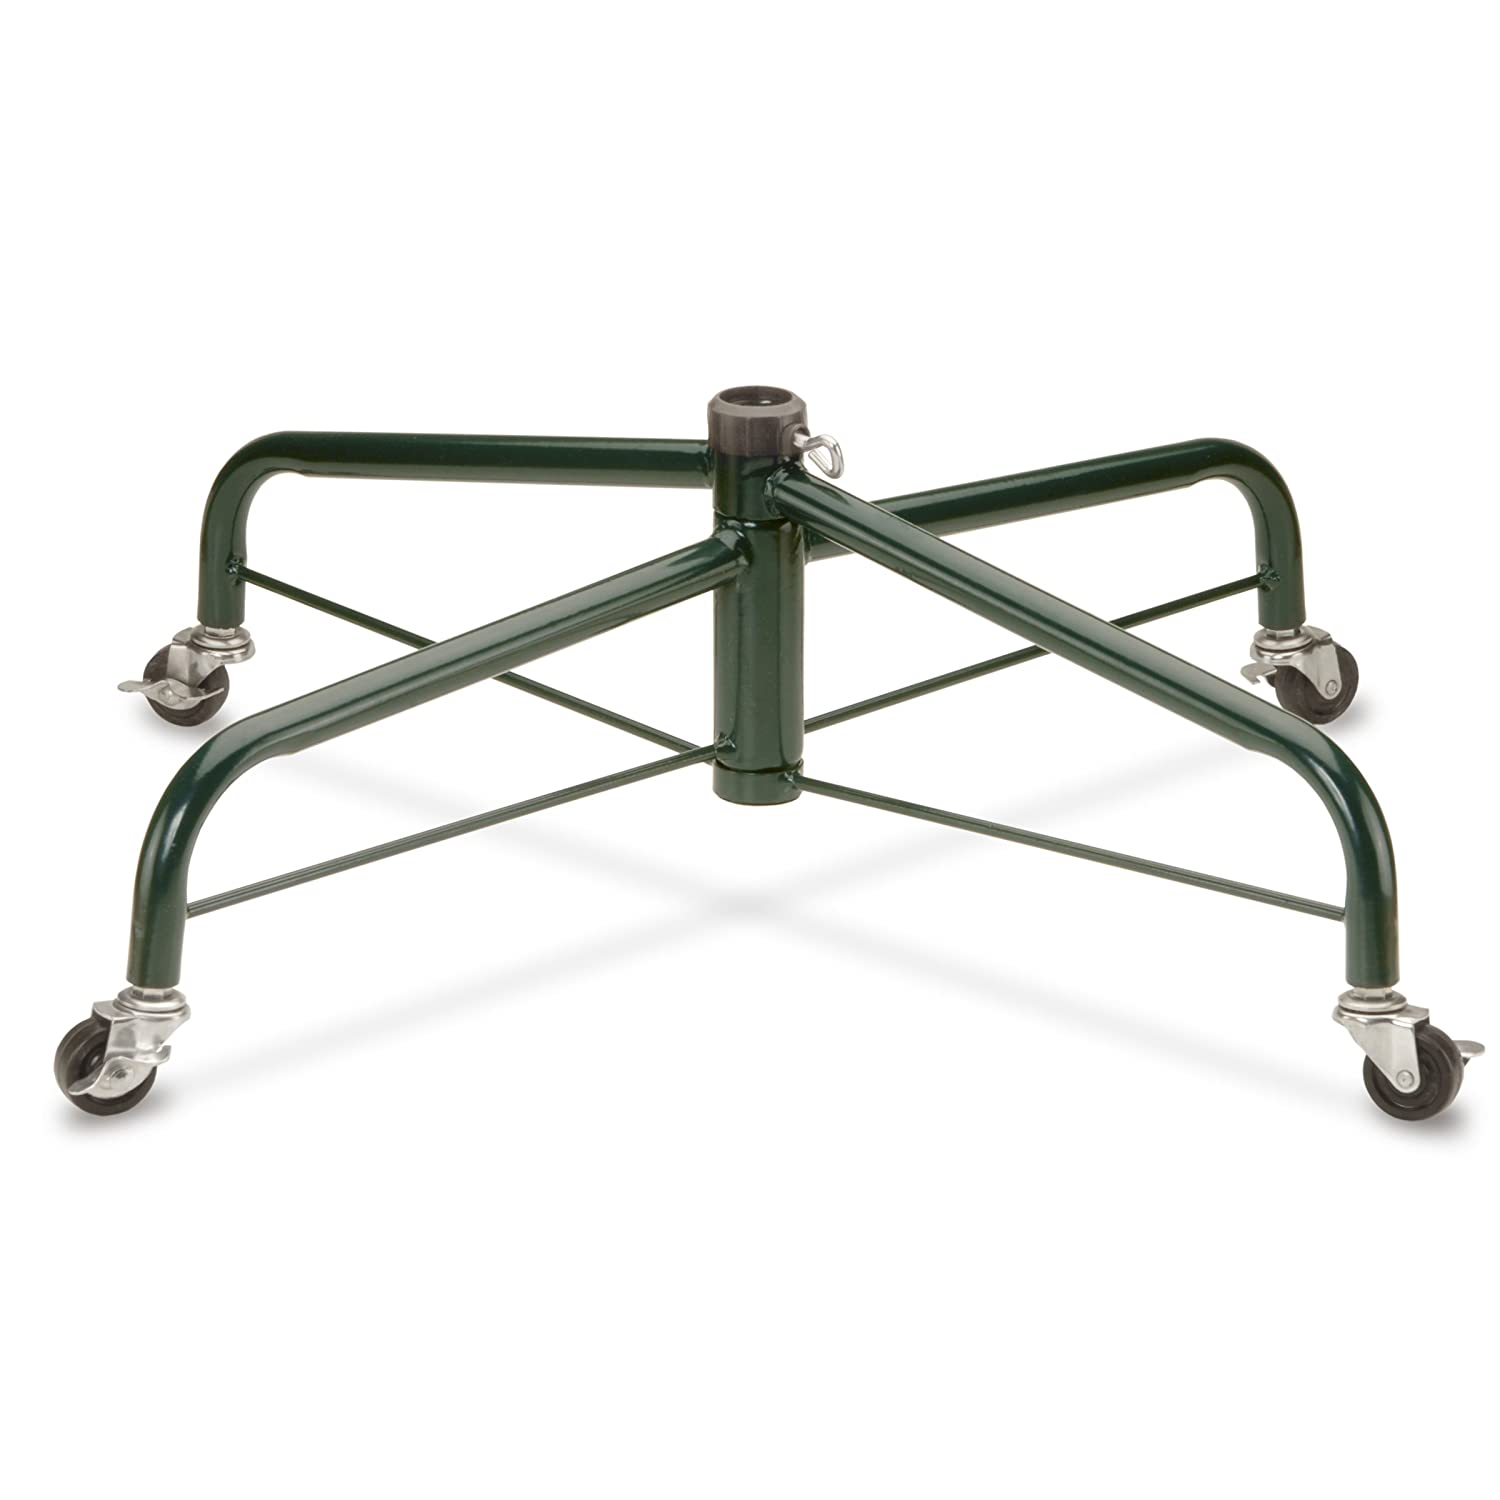 National Tree 28 Inch Folding Tree Stand with Rolling Wheels for 7.5 to 8 Foot Tree (FTS-28R-1)